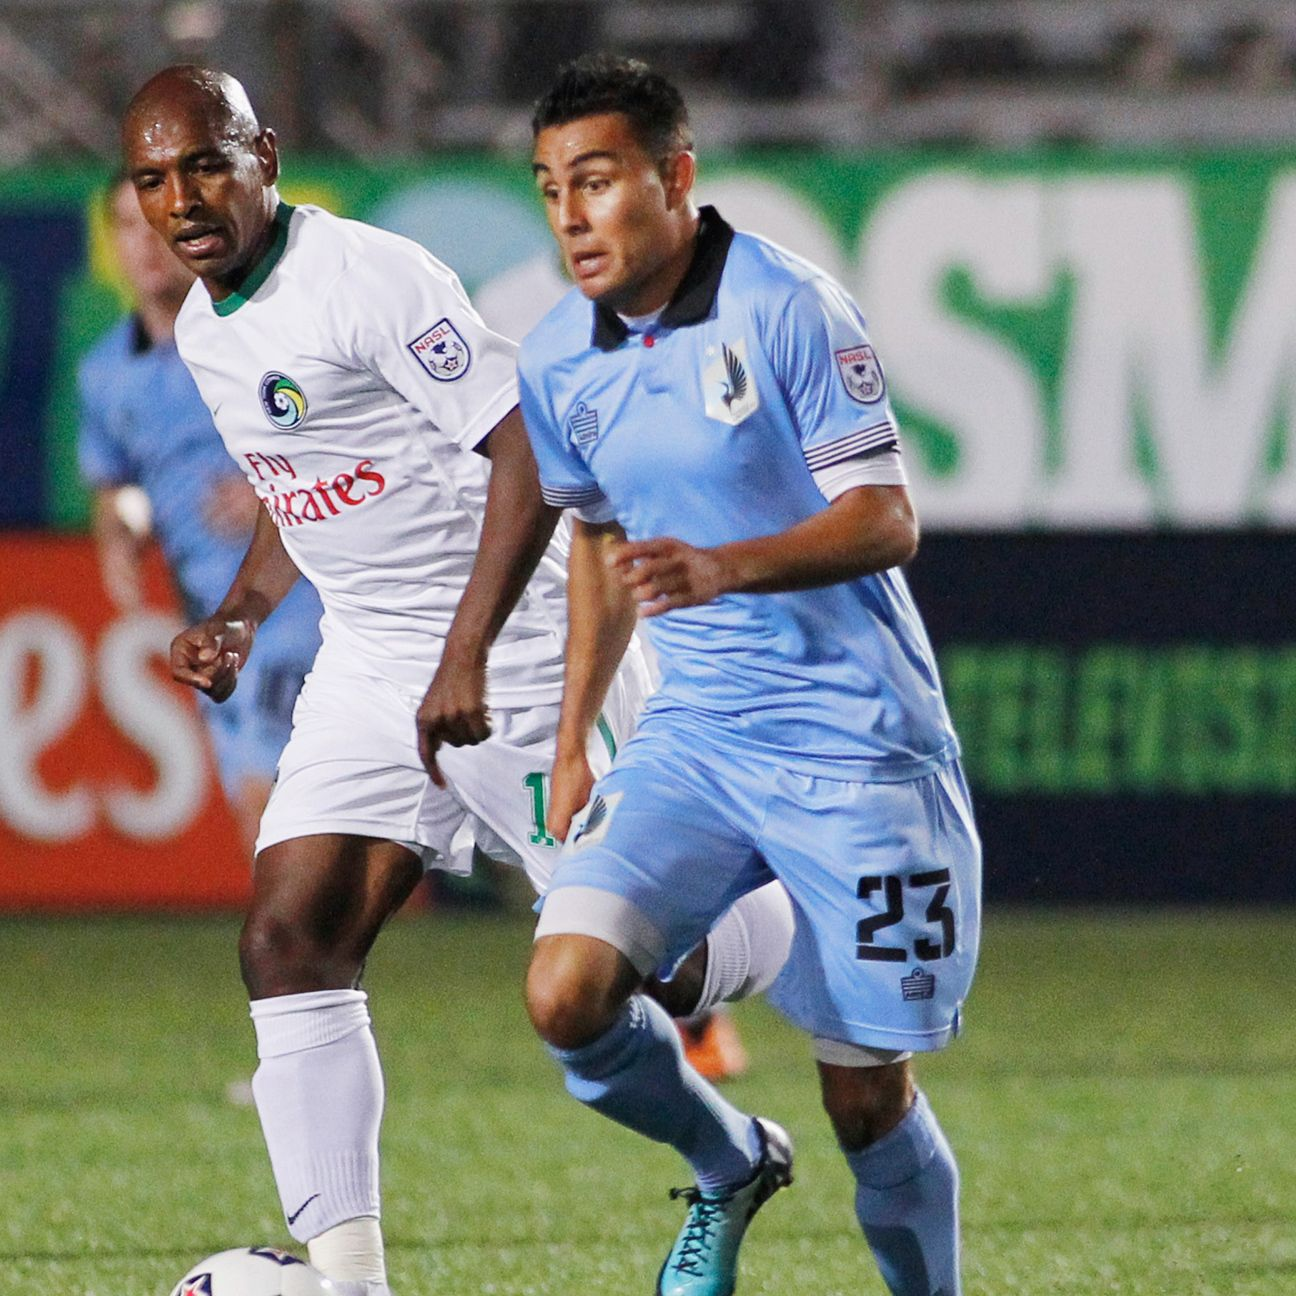 Midfielder Miguel Ibarra made his USMNT debut in 2014 while a member of the NASL's Minnesota United.